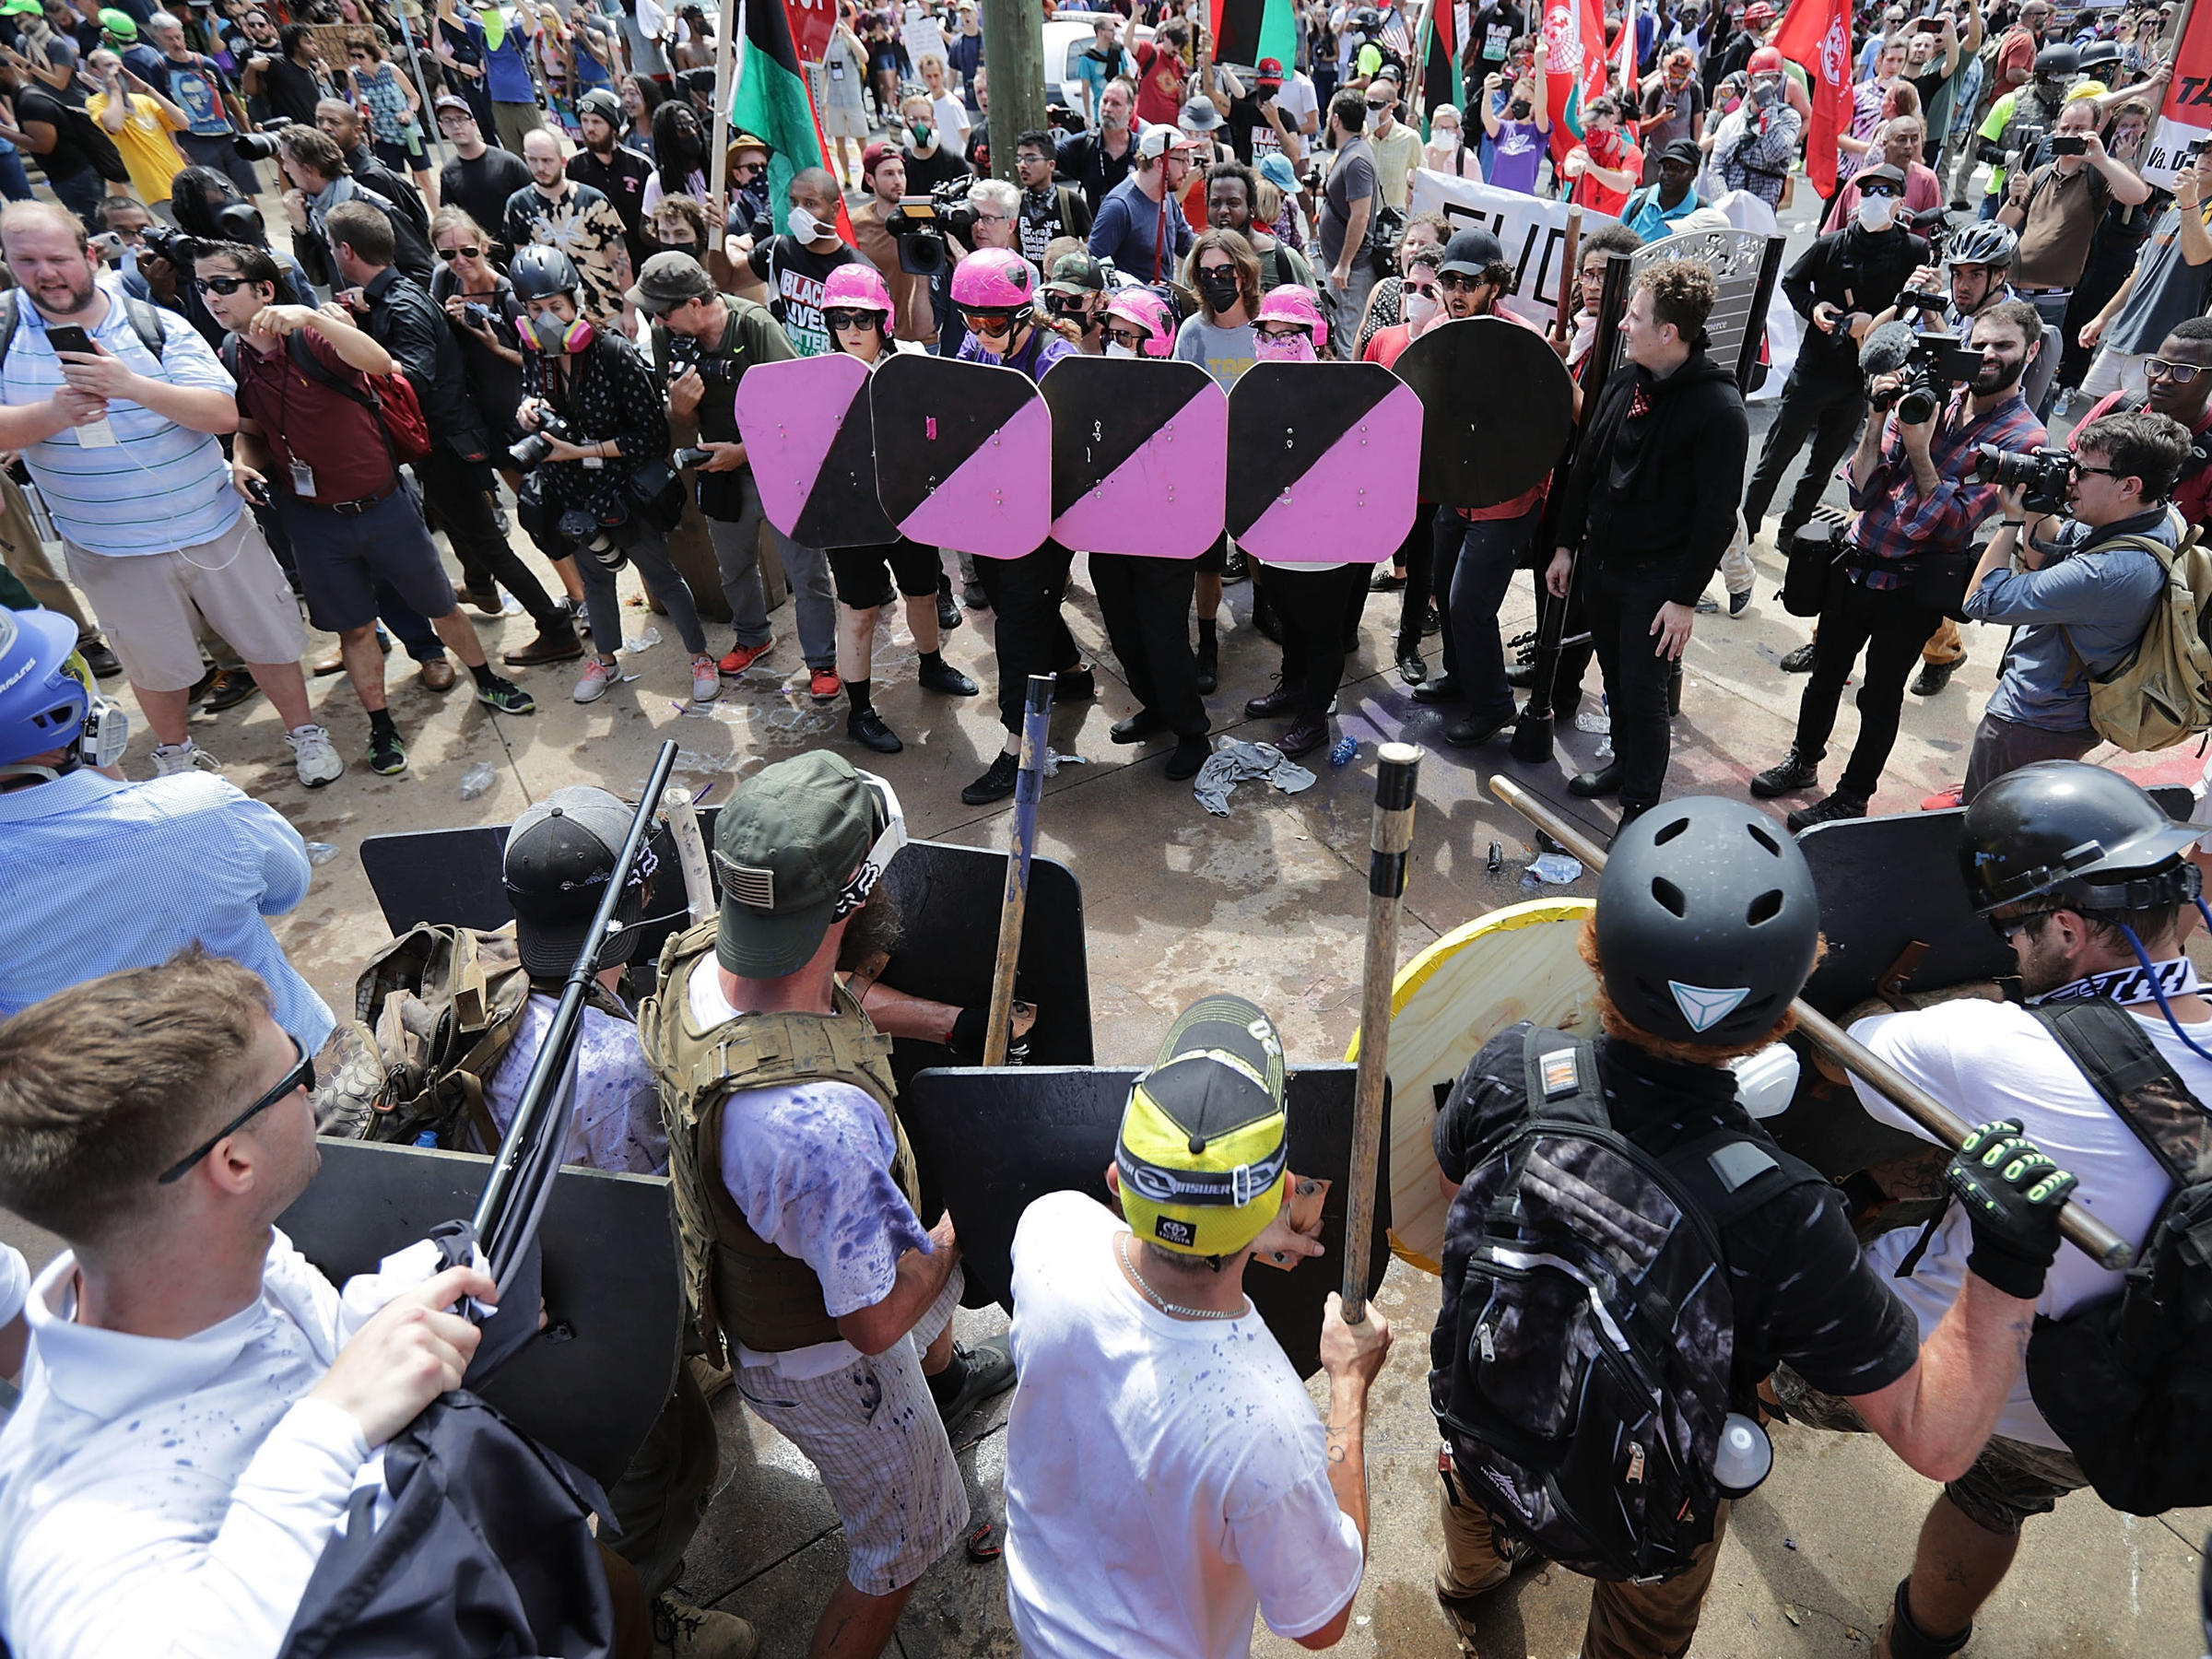 Federal Bureau of Investigation probe under way into Virginia white nationalist post-rally violence